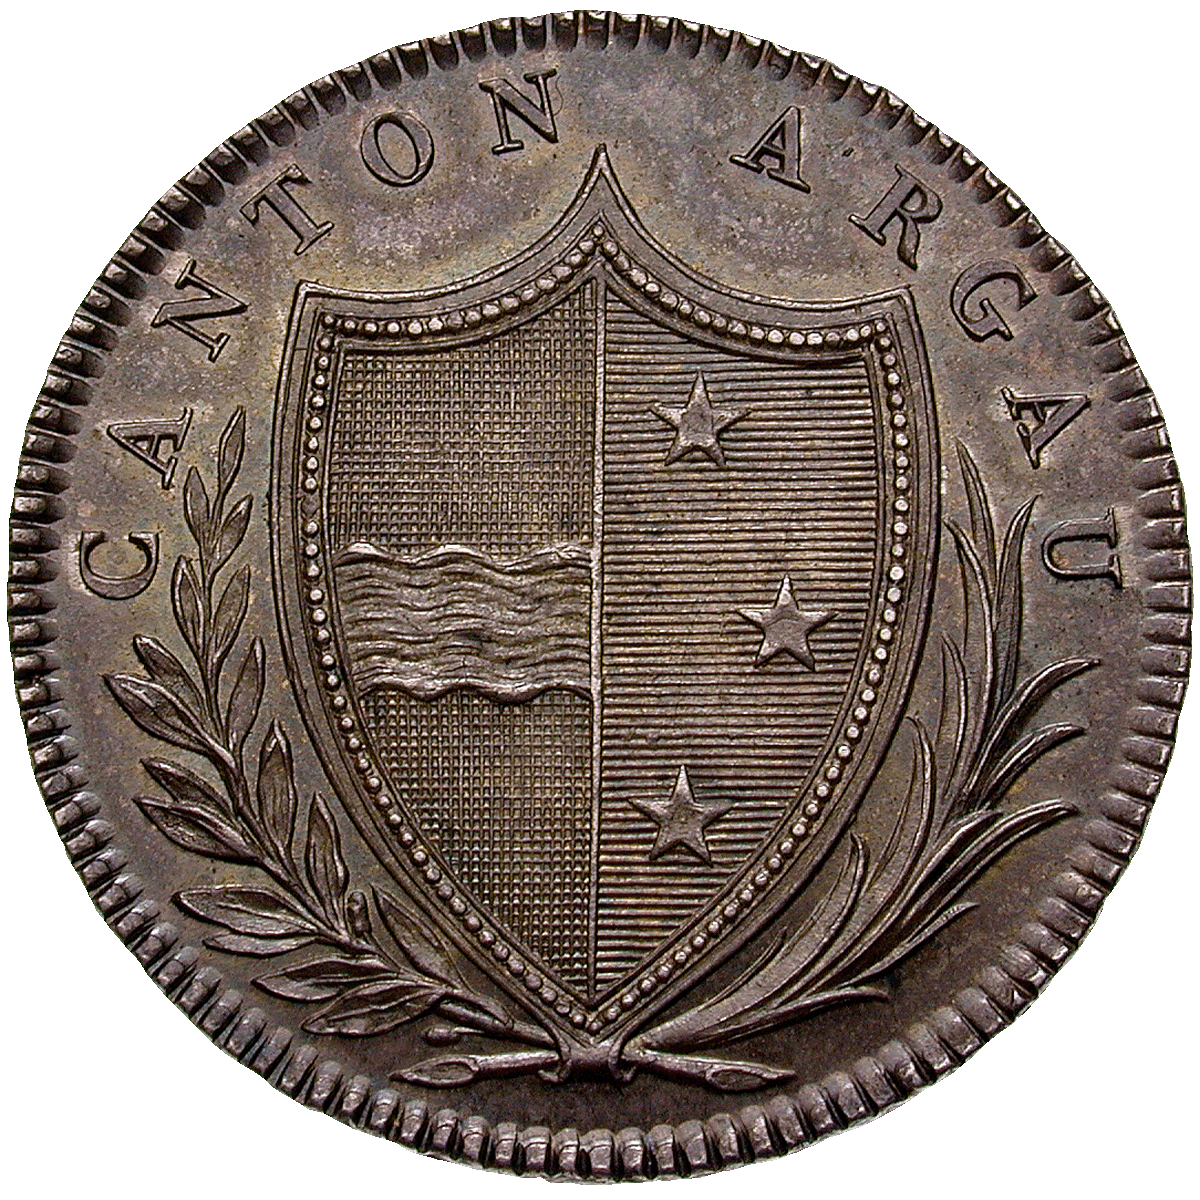 Canton of Argovia, Time of Mediation, 20 Batzen 1809 (obverse)